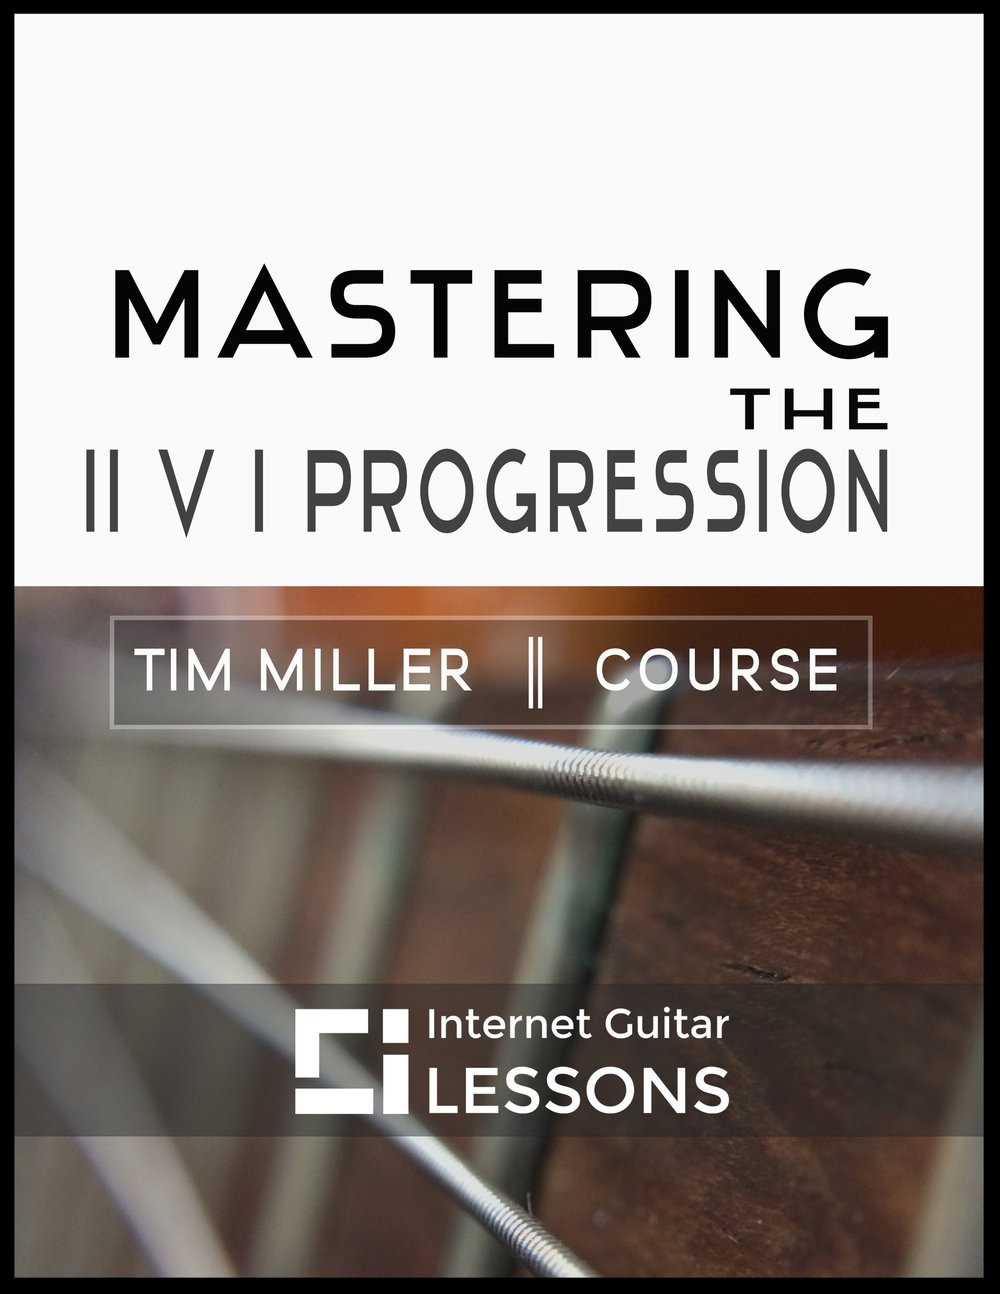 Mastering the II V I Progression 1.17 flat.jpg